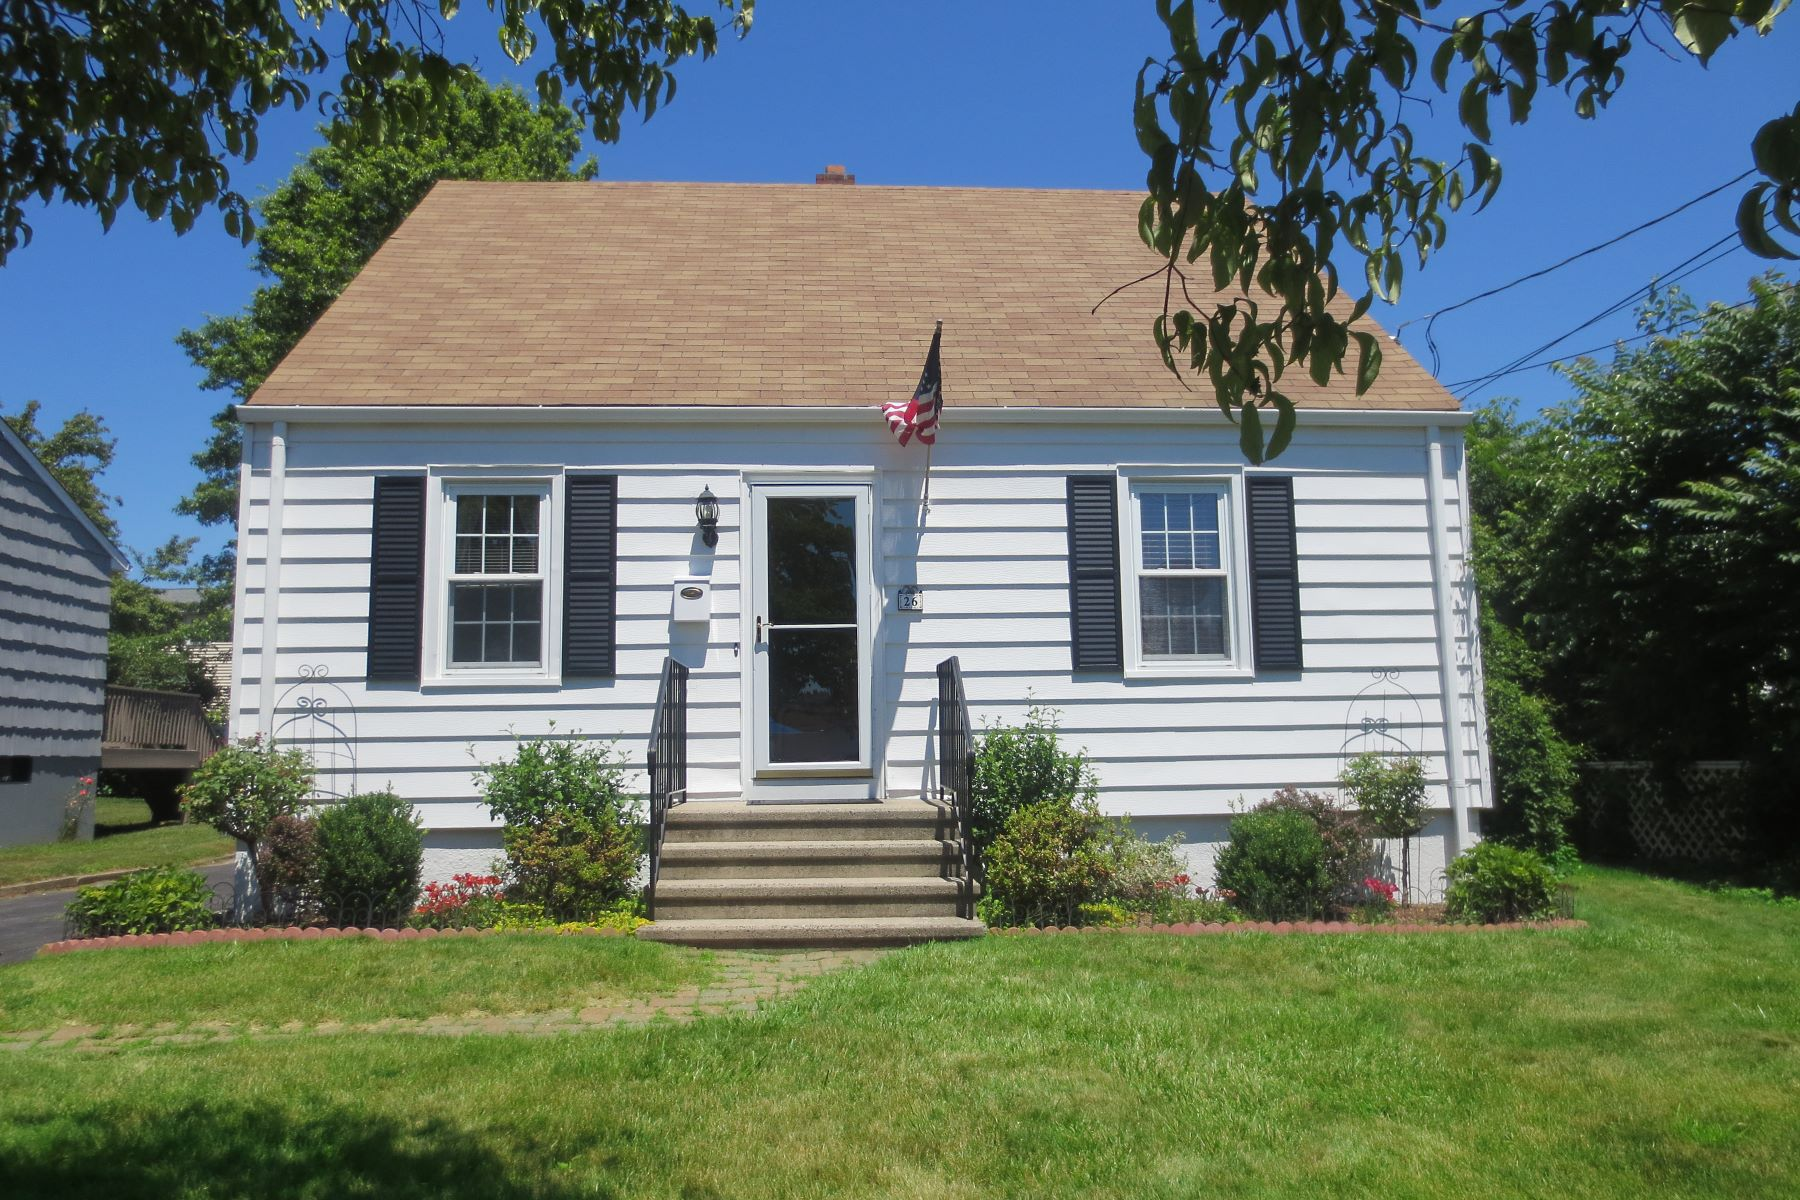 Single Family Home for Sale at Turn The Key And Move Right In! 26 Renchy Street, Fairfield, Connecticut, 06824 United States